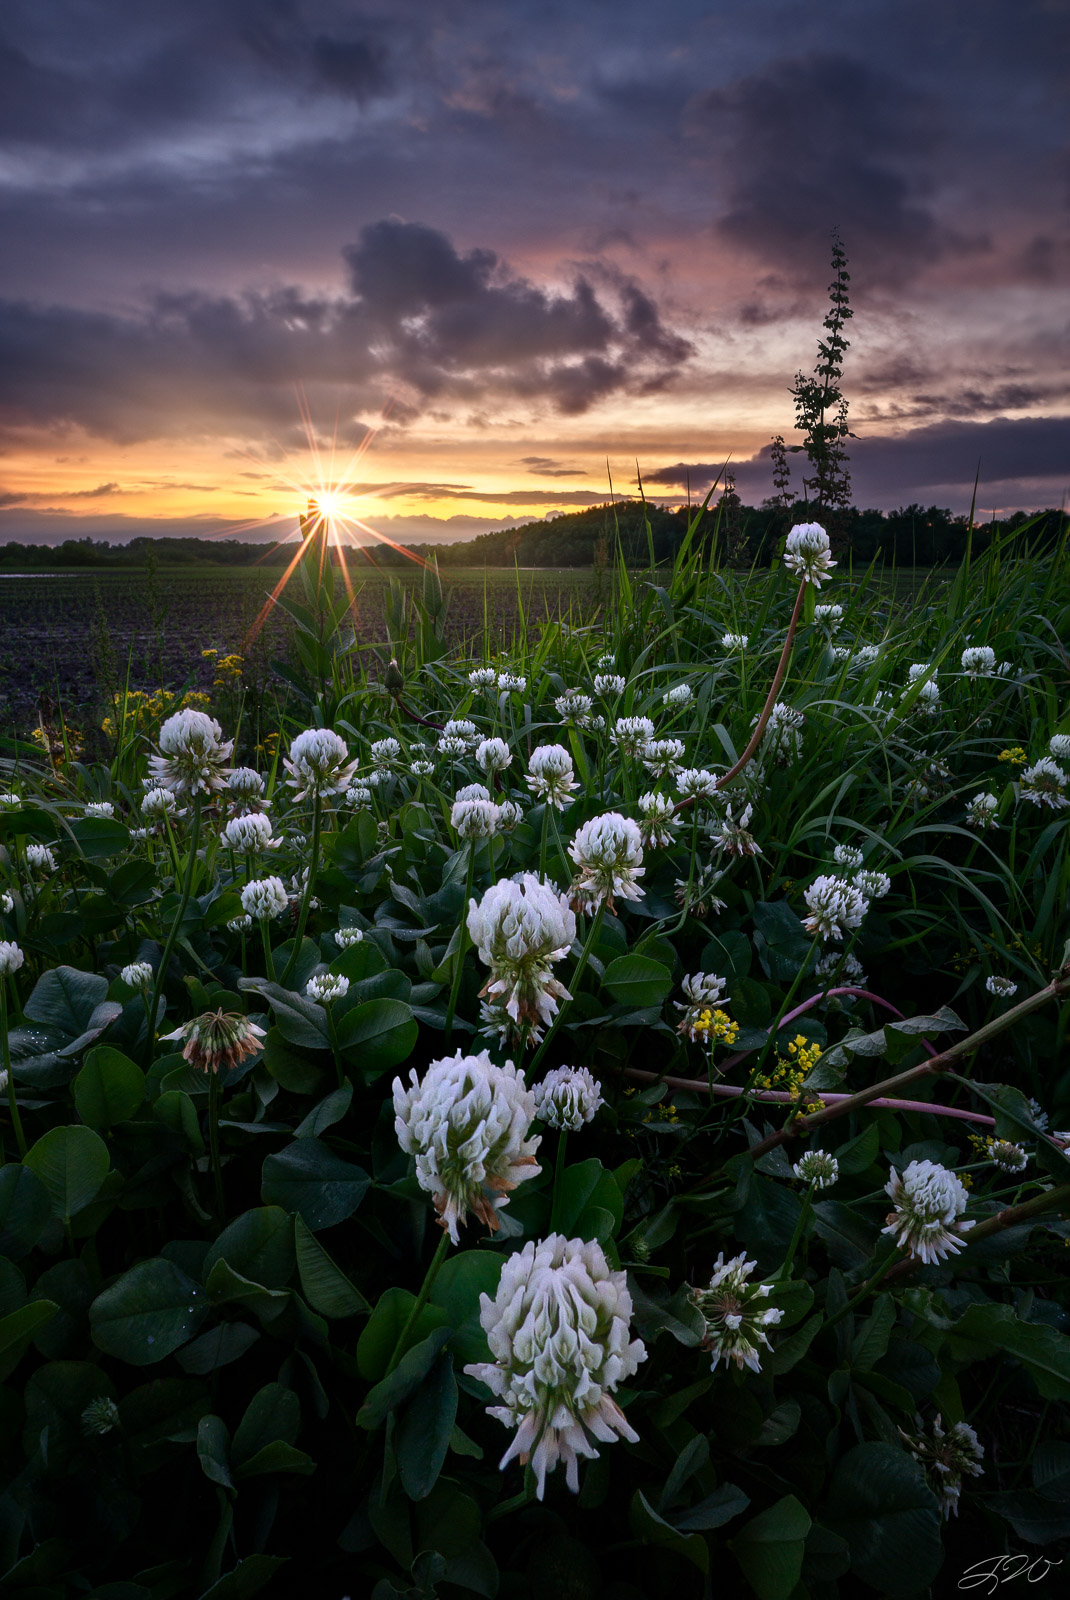 Fine Art Limited Edition of 100. A patch of white clover wildflowers leads towards the horizon during sunset. White clover is...